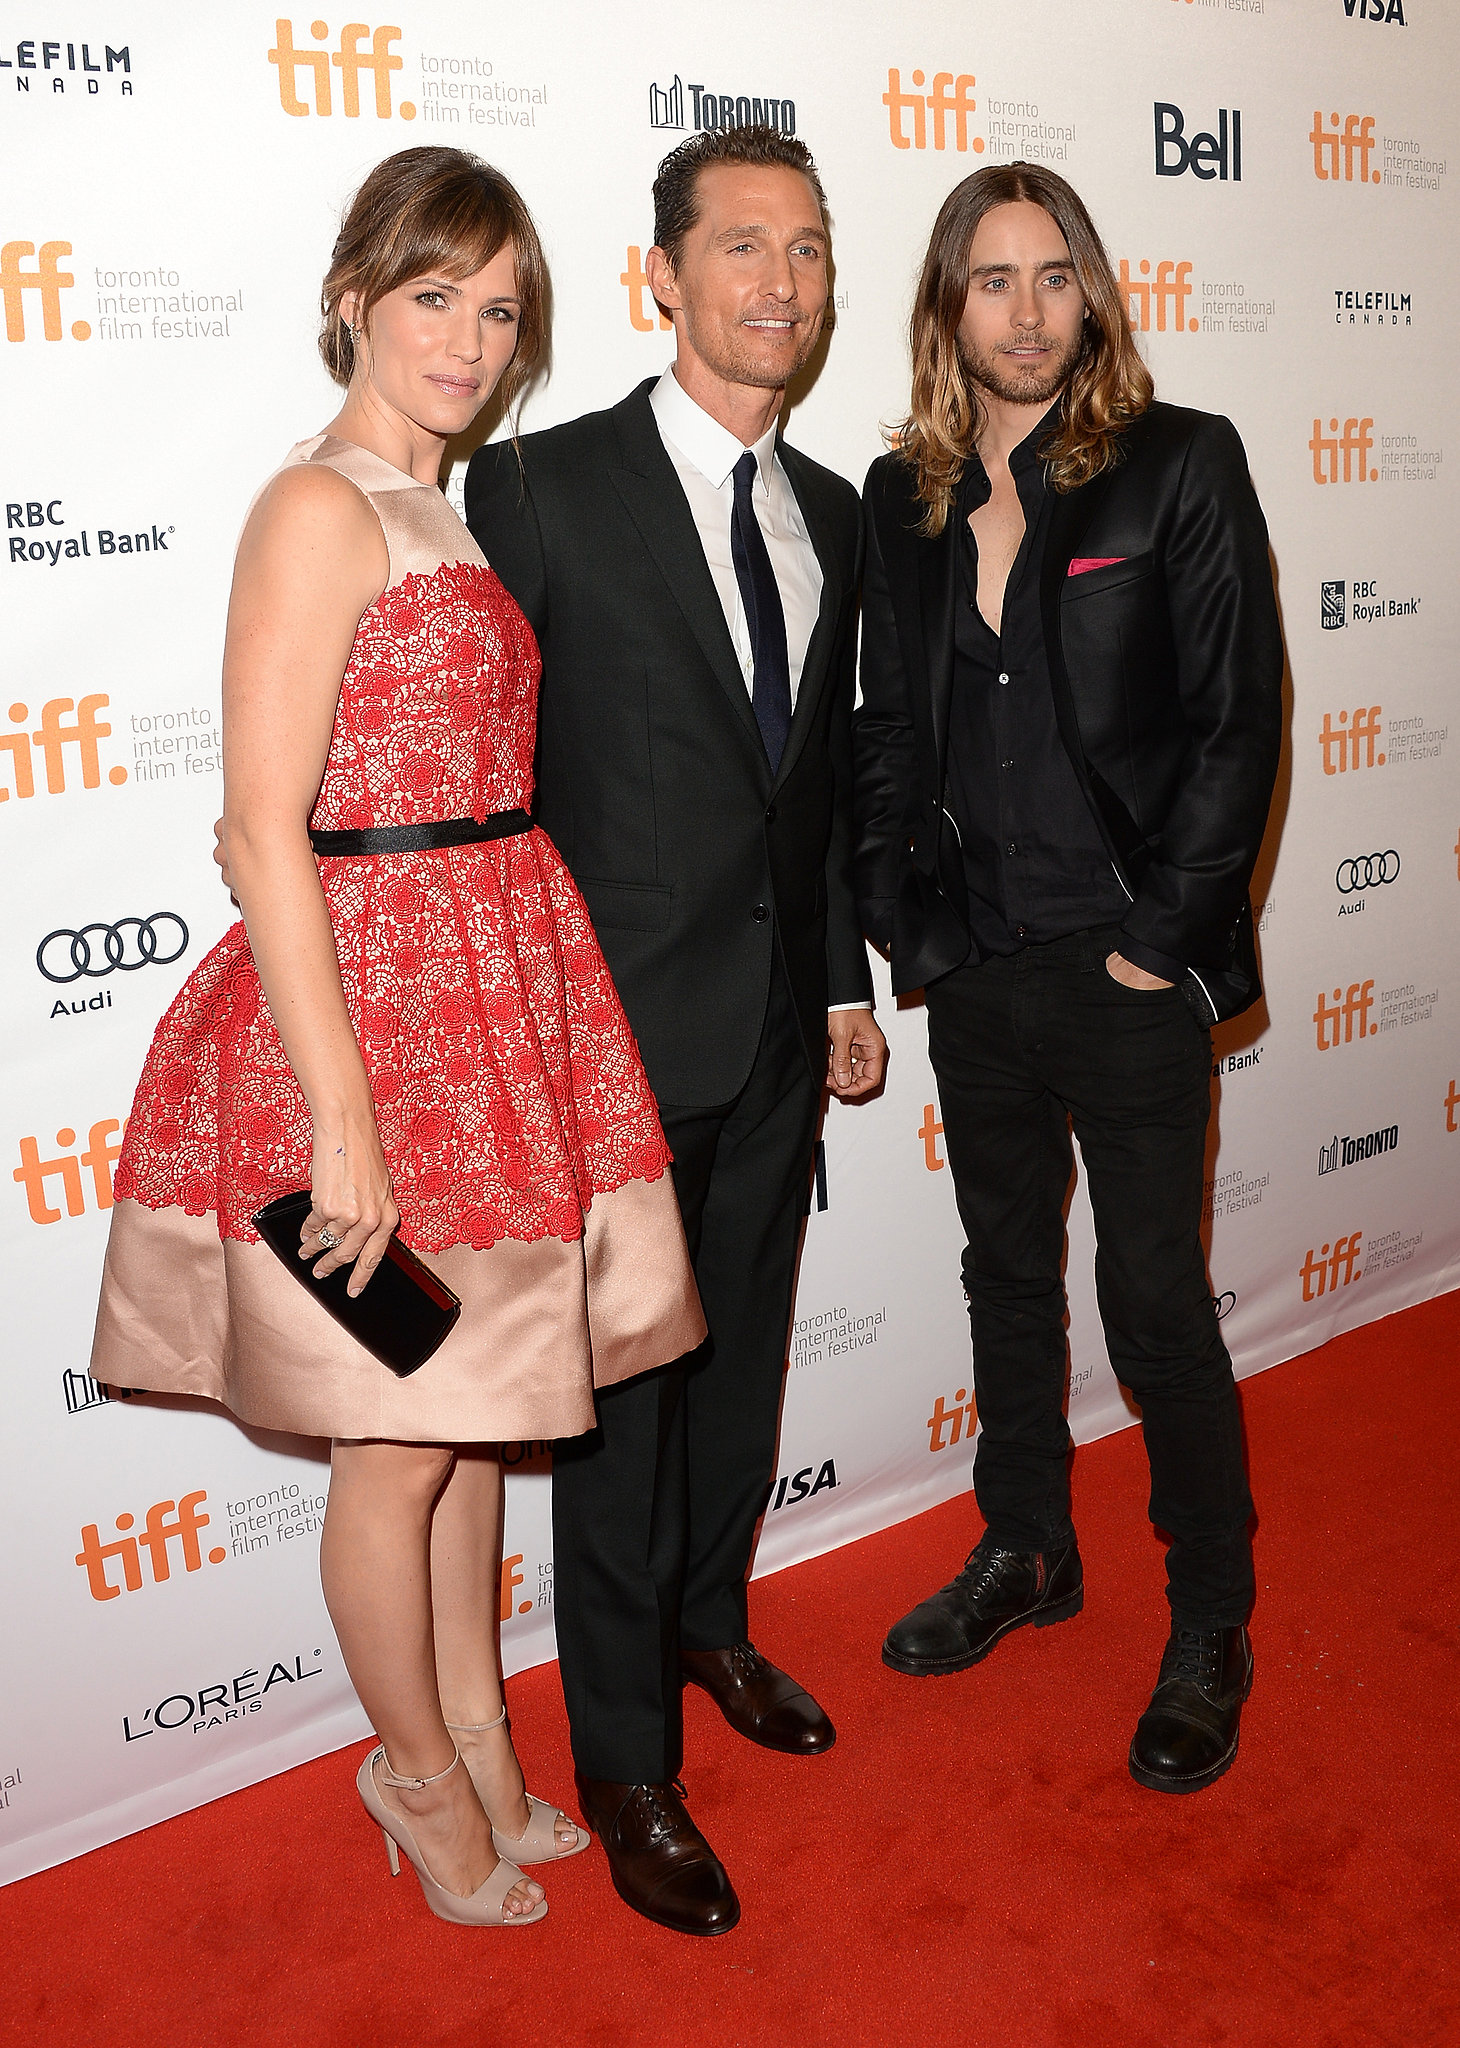 Matthew McConaughey stopped for photos with his Dallas Buyers Club costars, Jennifer Garner and Jared Leto.